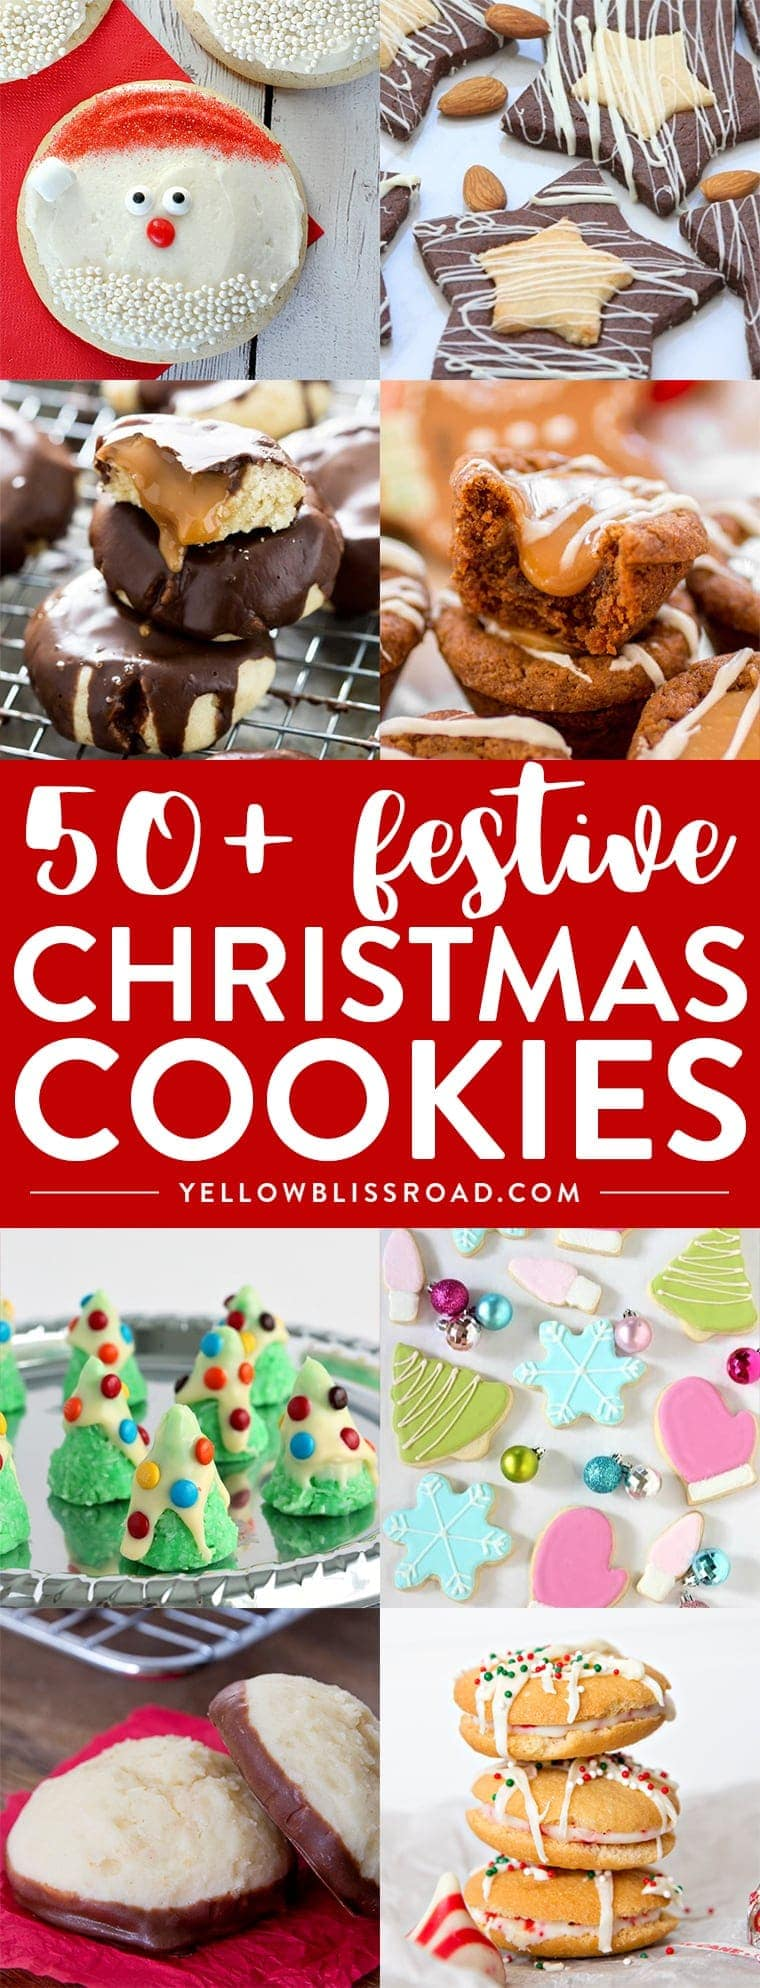 50+ Festive Christmas Cookies | Best Christmas Cookies | Easy Christmas Cookie recipes